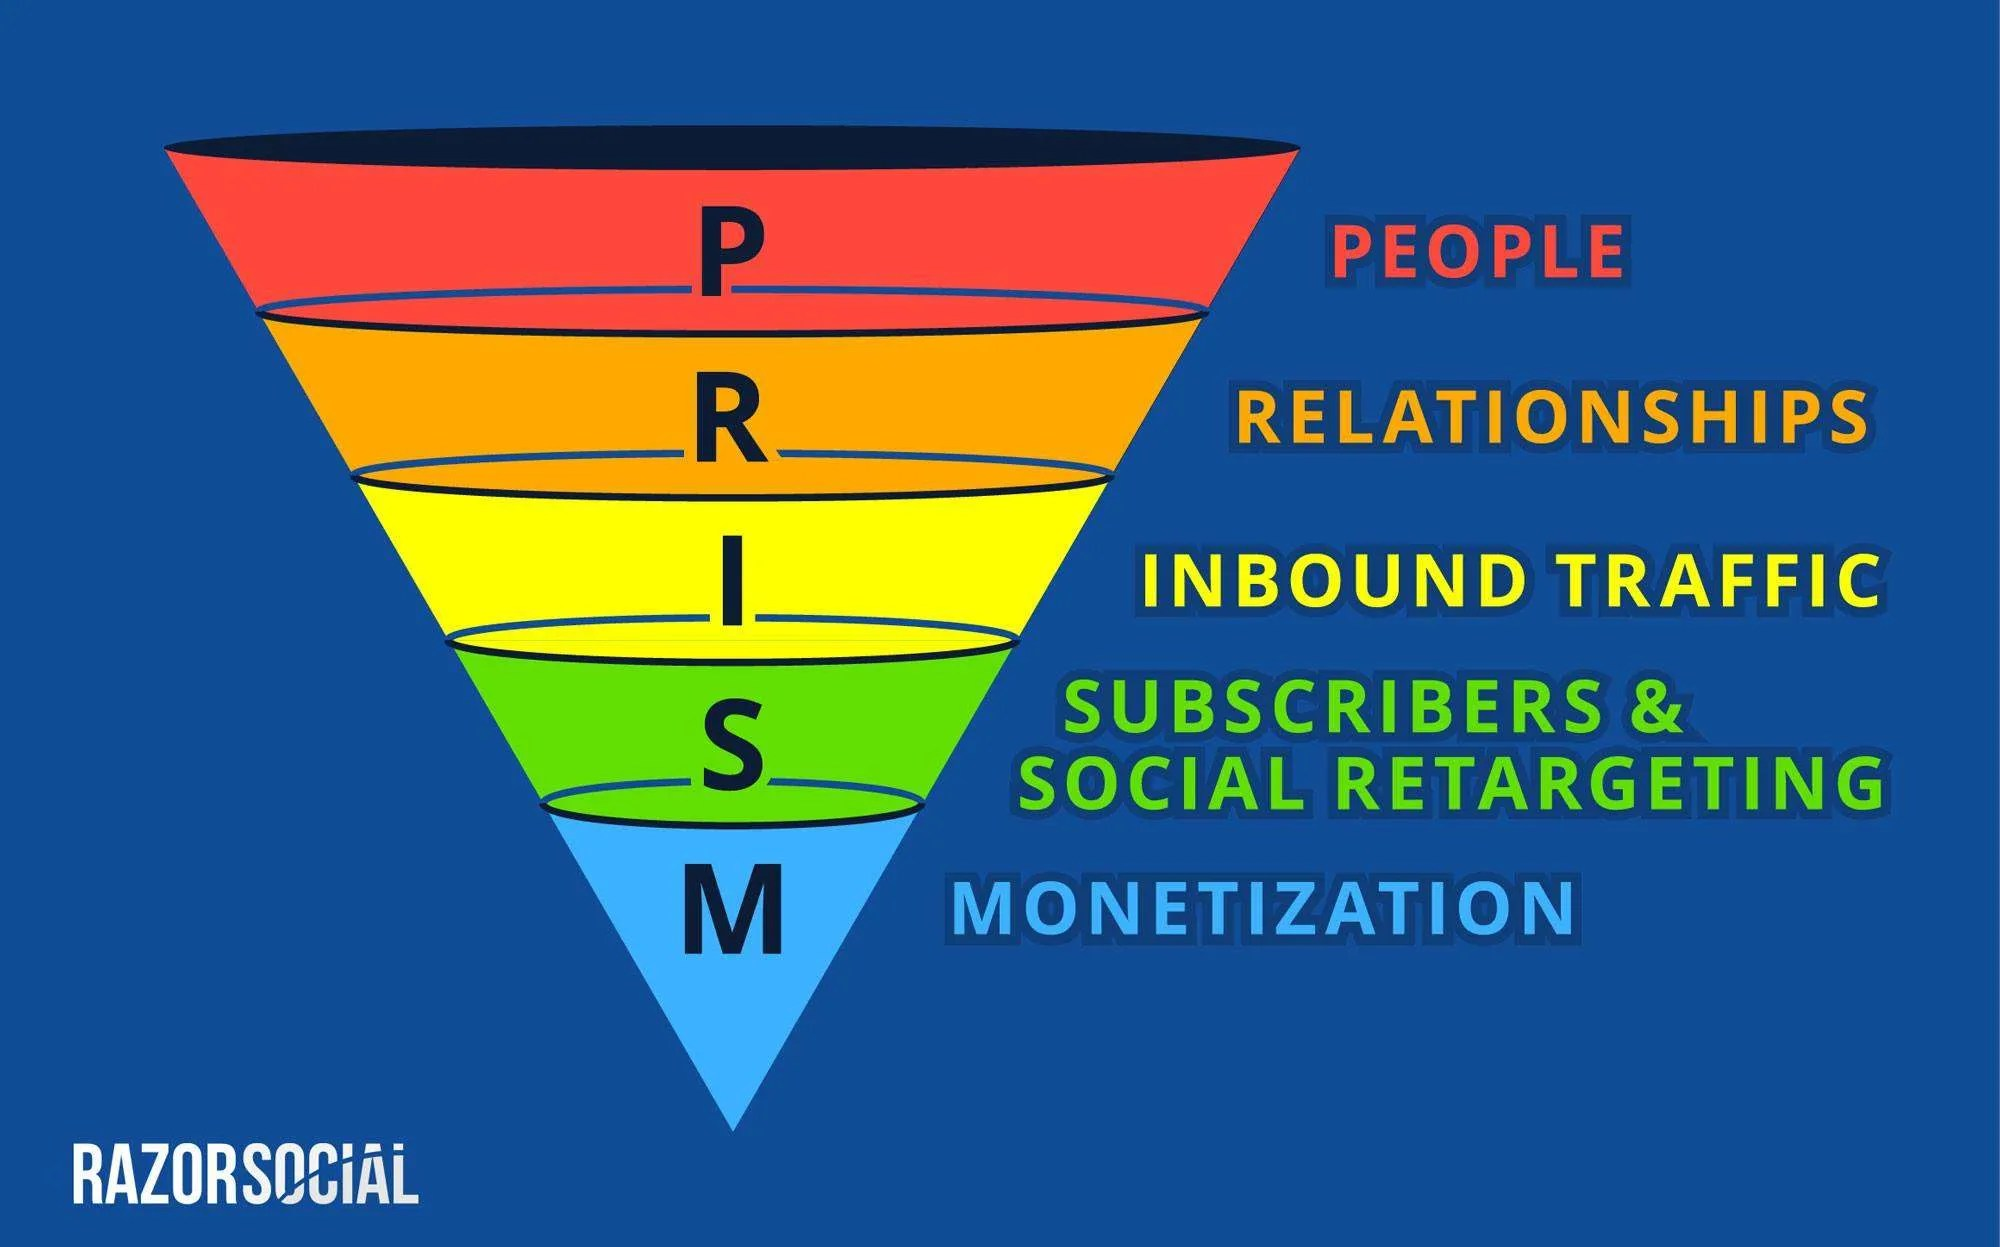 PRISM framework for social selling, by Ian Cleary.